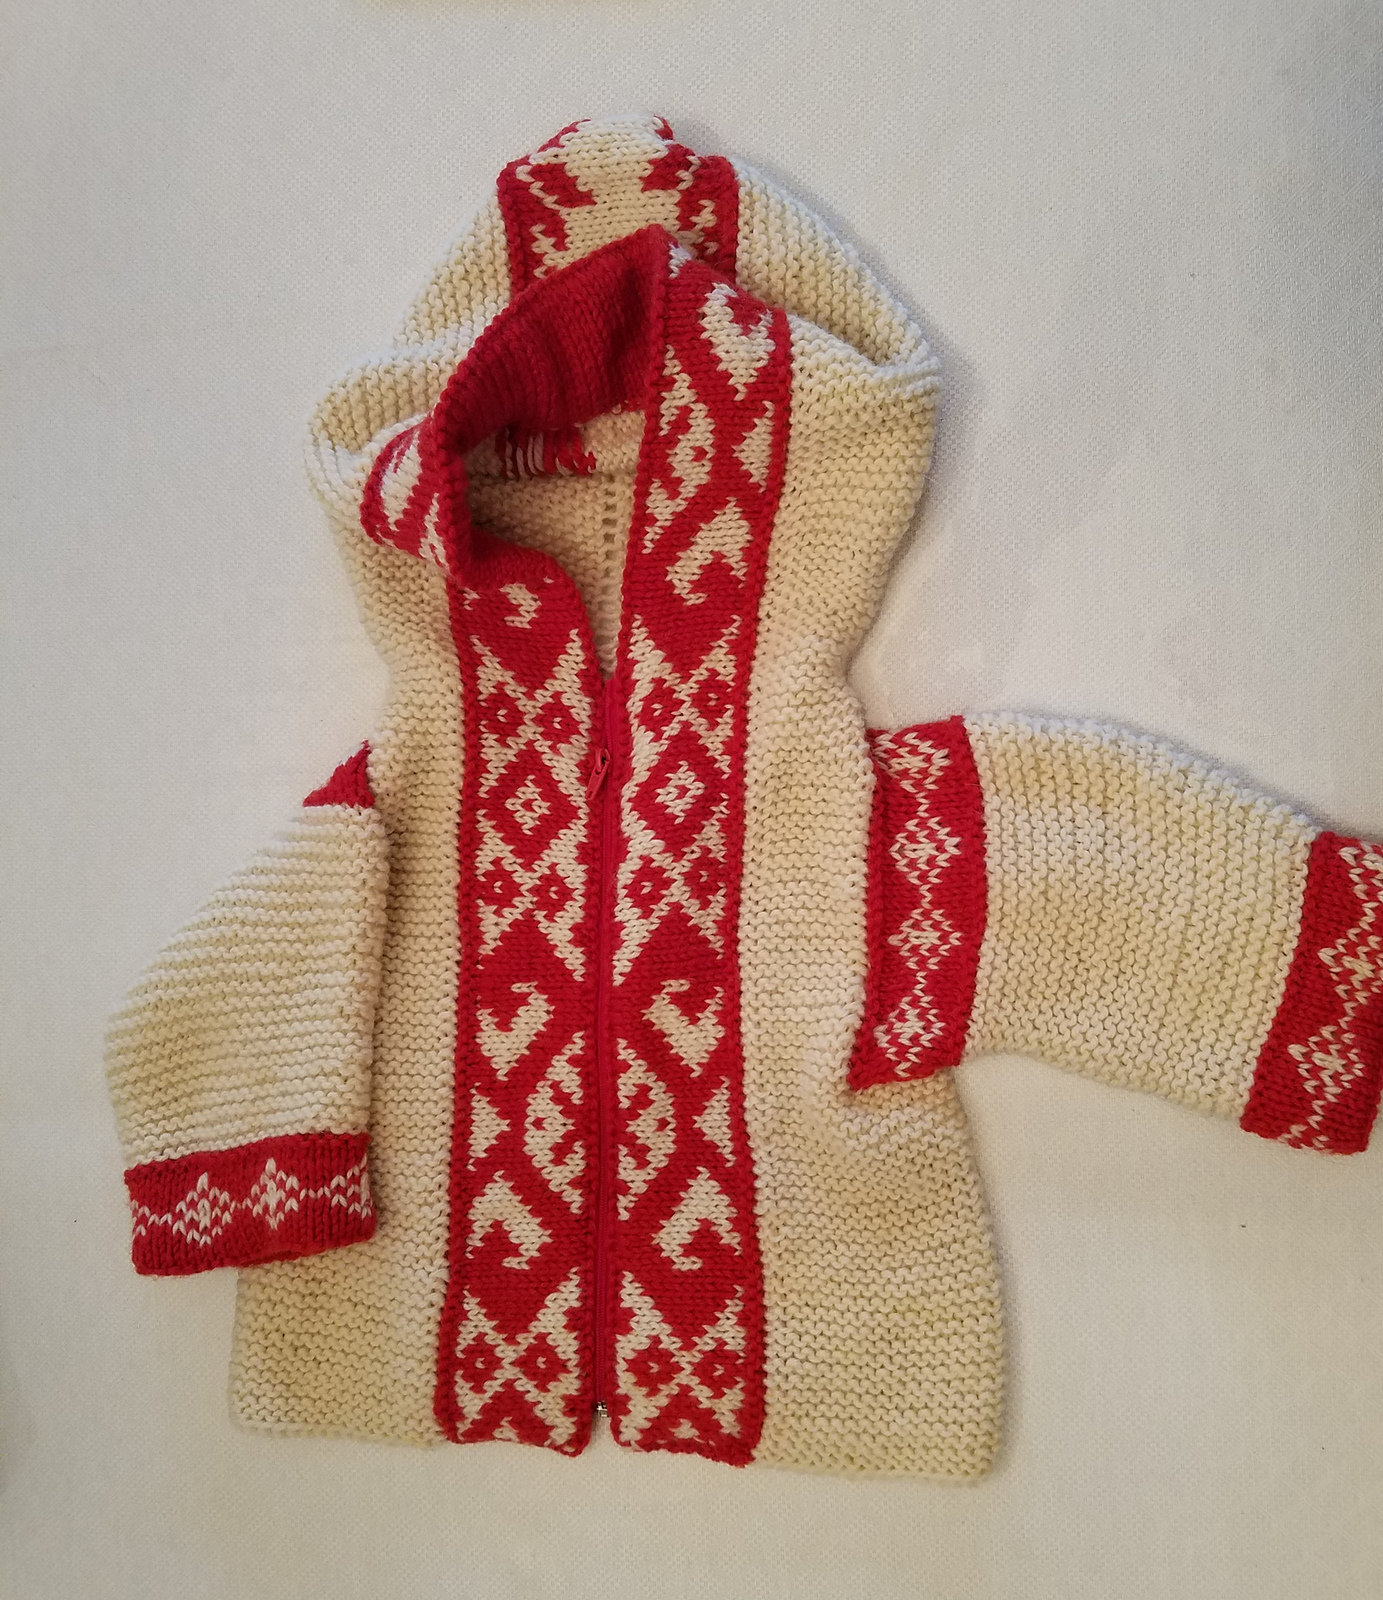 Small knit white sweater with a red and white patterned border